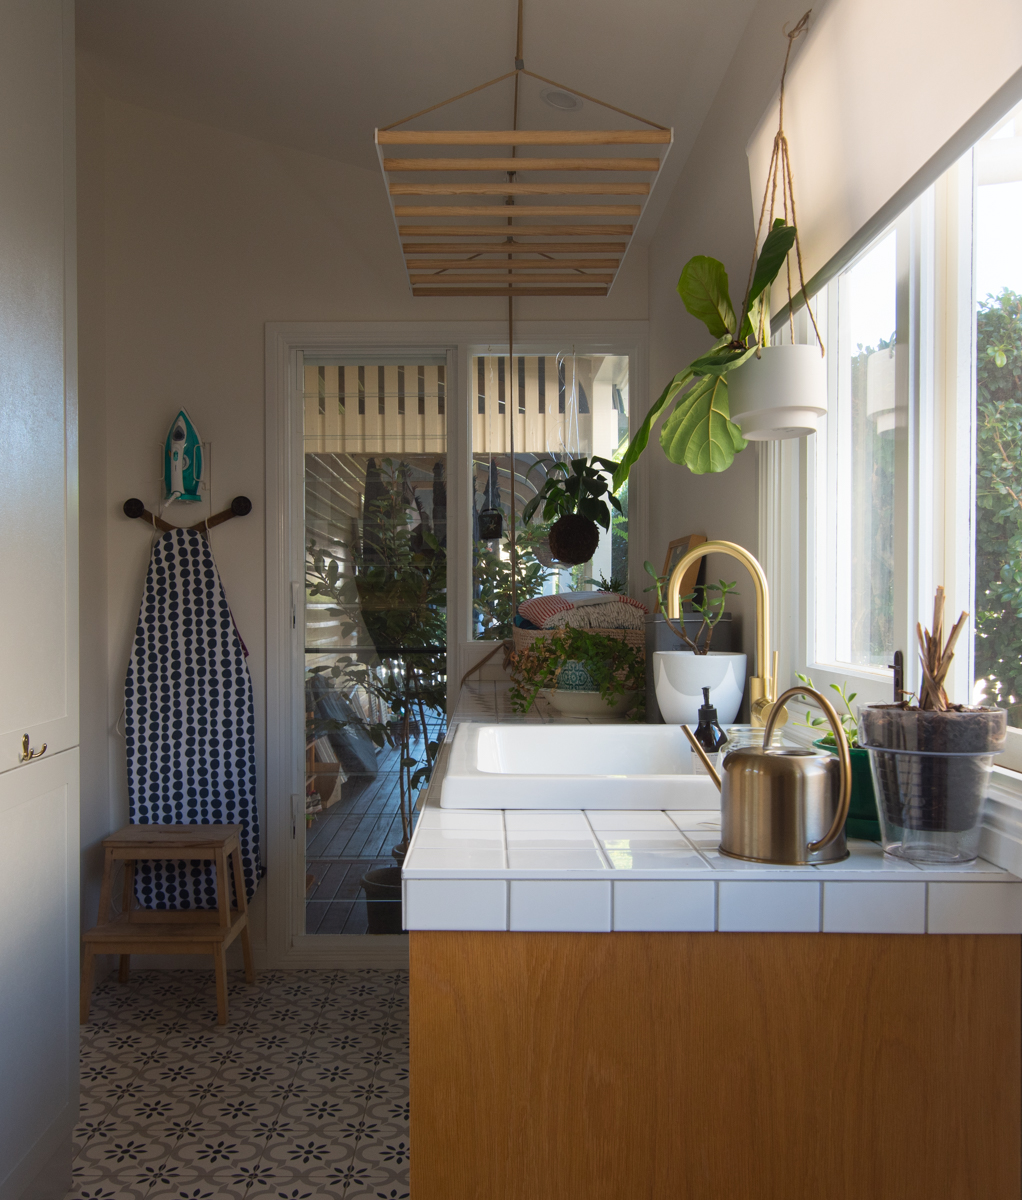 Laundry with tile bench and hanging drying rack